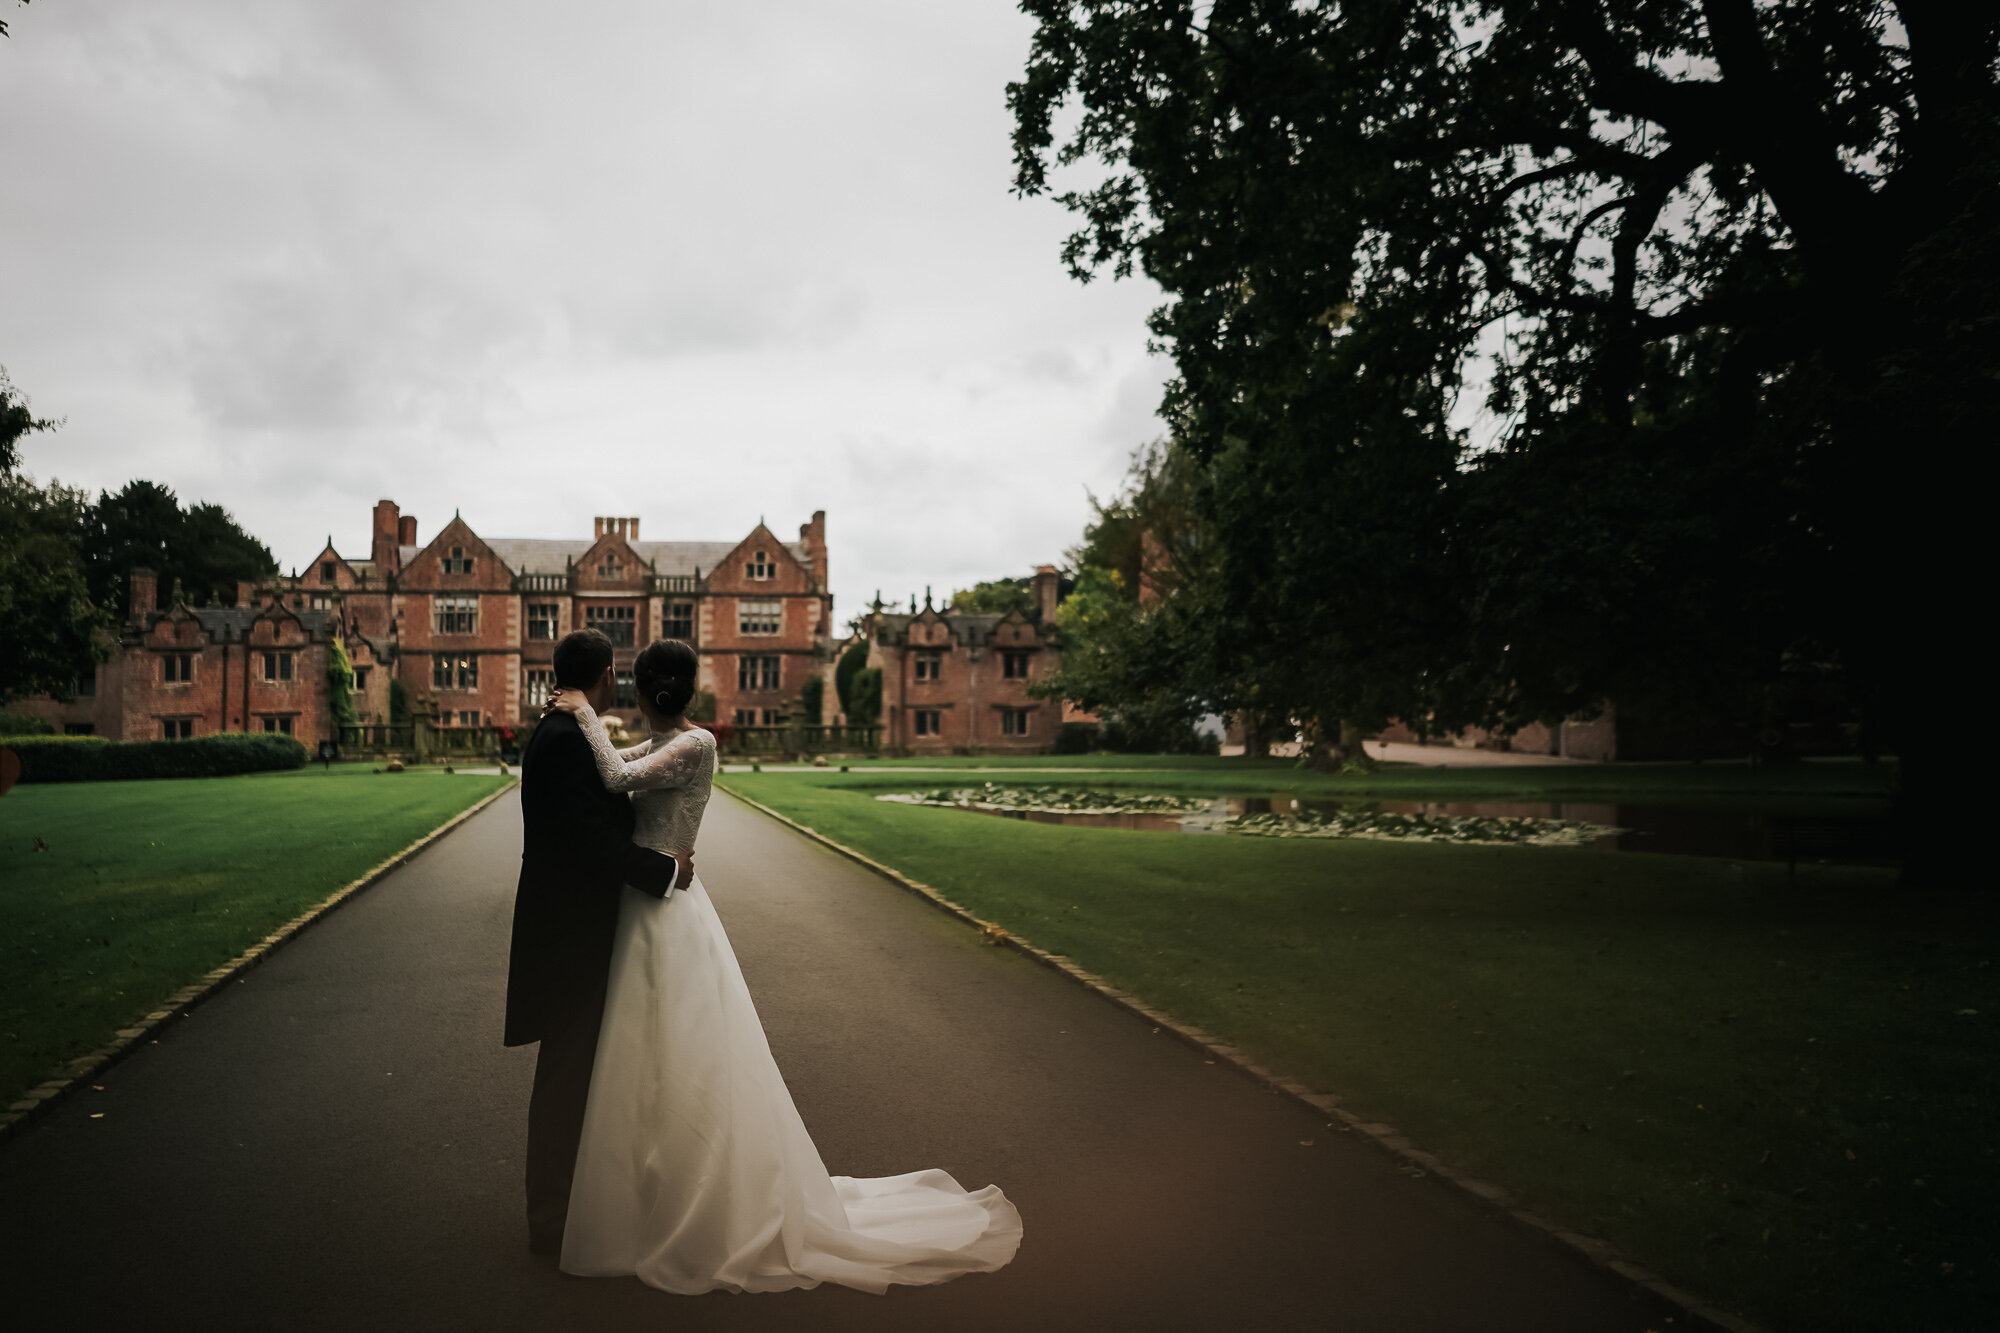 Dorfold Hall wedding photographer Wedding Photography Cheshire wedding photographer (40 of 60).jpg